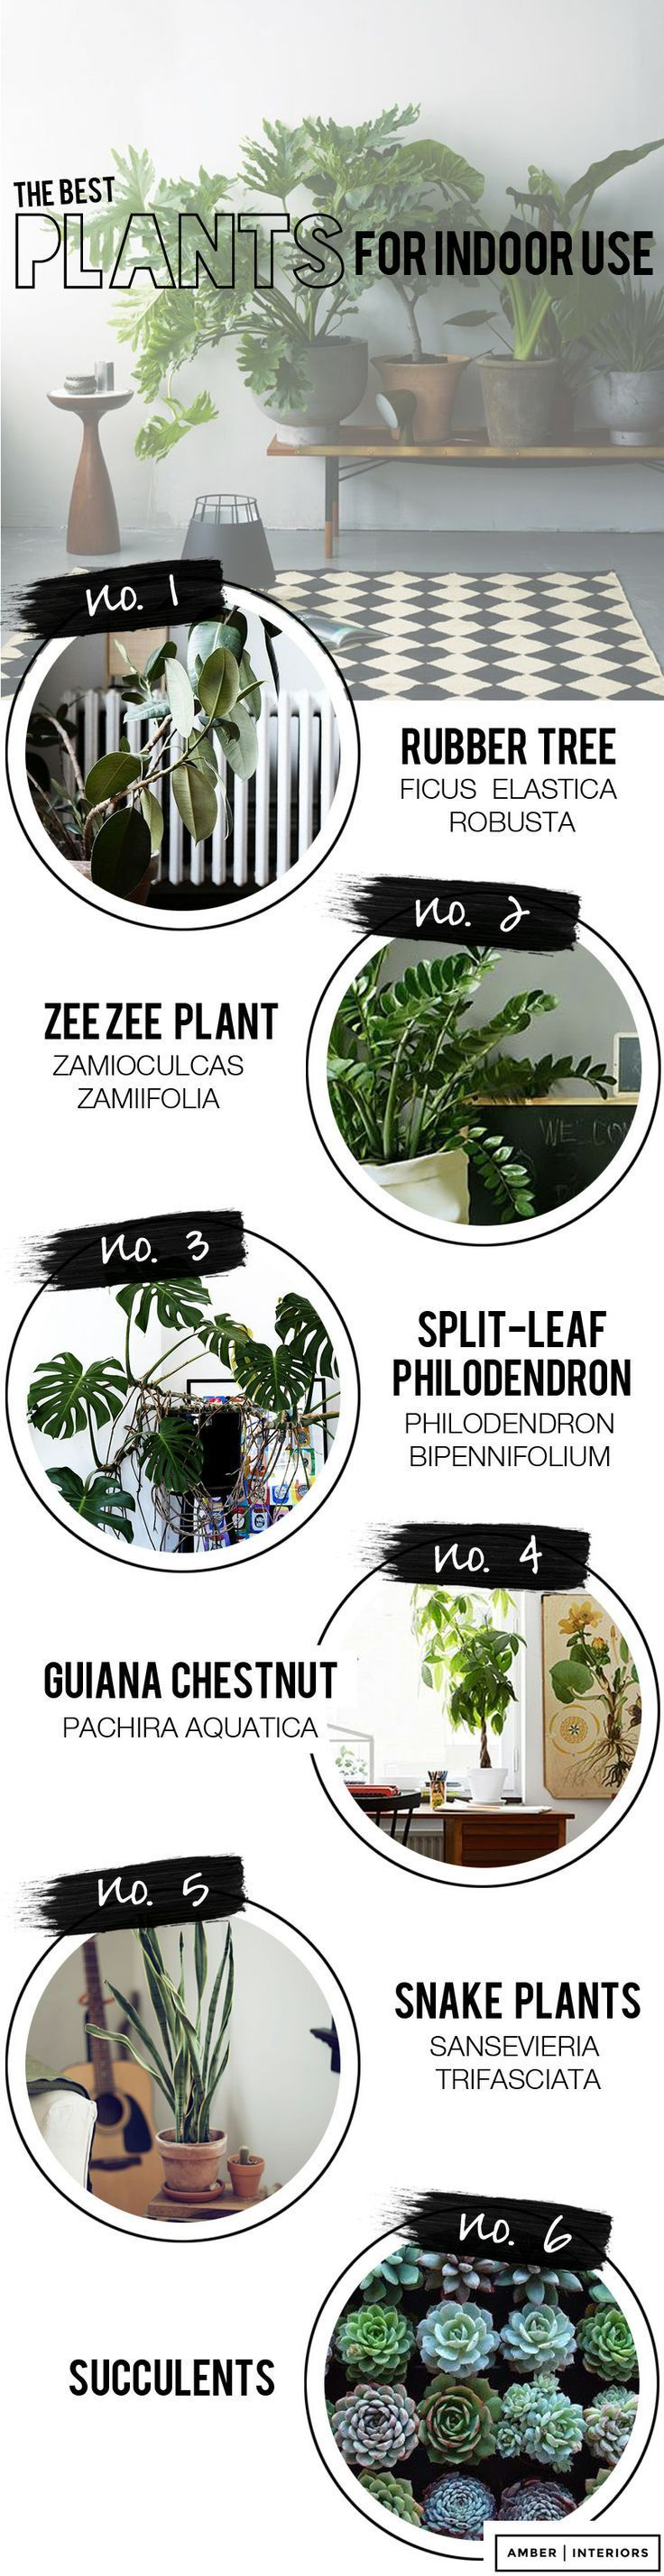 25 best ideas about low maintenance plants on pinterest easy plants to grow house plants and. Black Bedroom Furniture Sets. Home Design Ideas